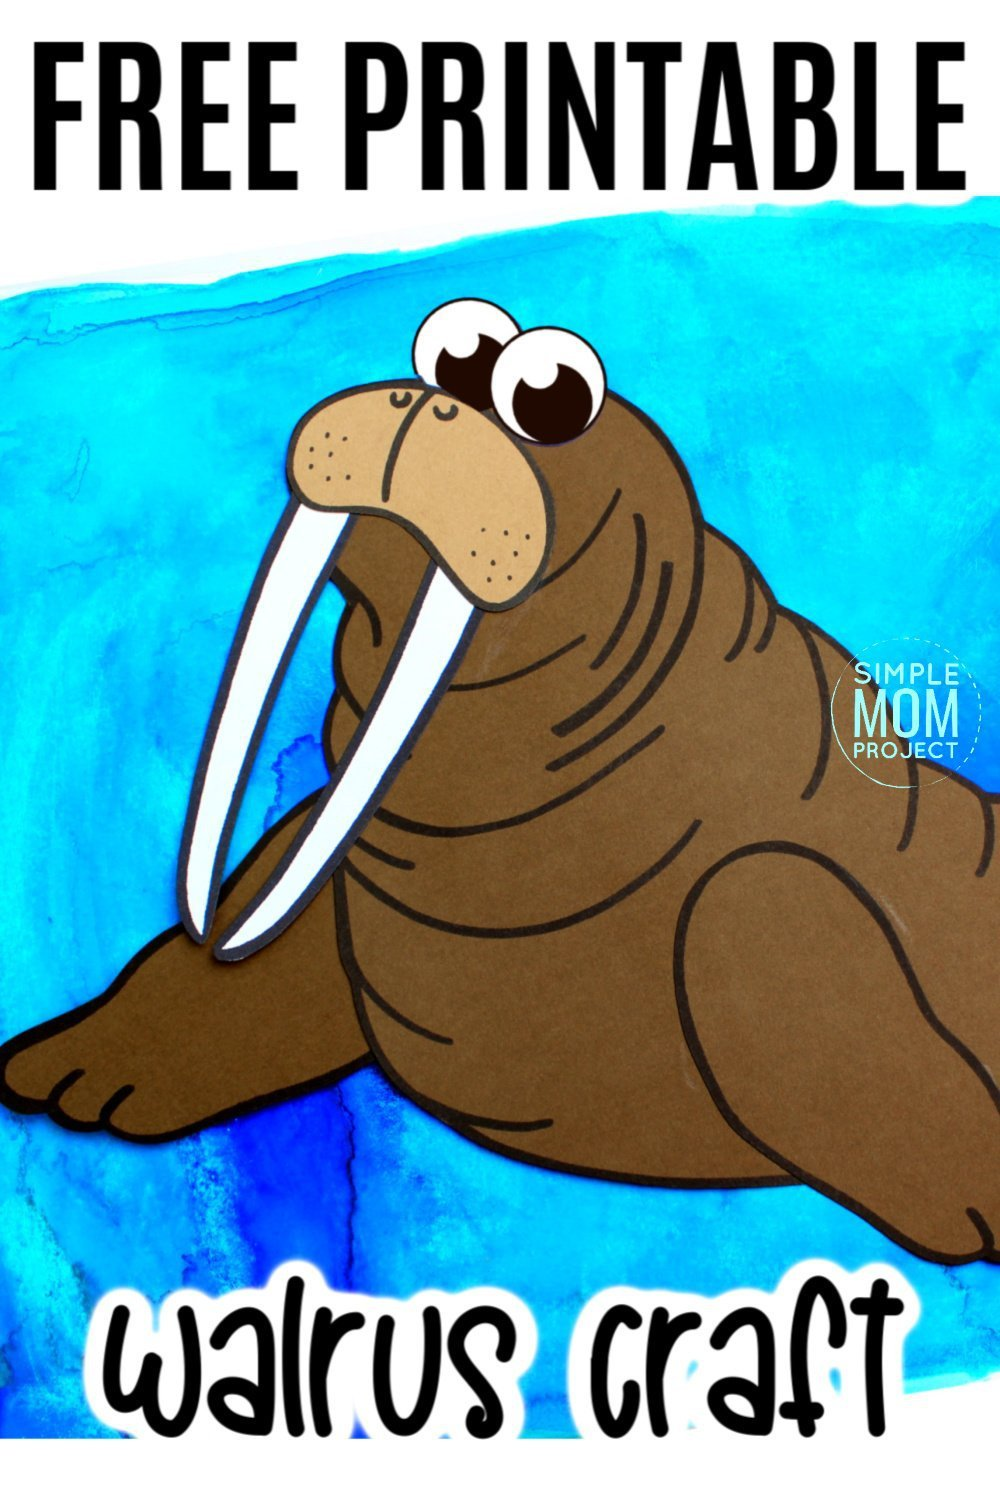 Free Printable Arctic Animal Walrus Craft for Kids Preschoolers and Toddlers